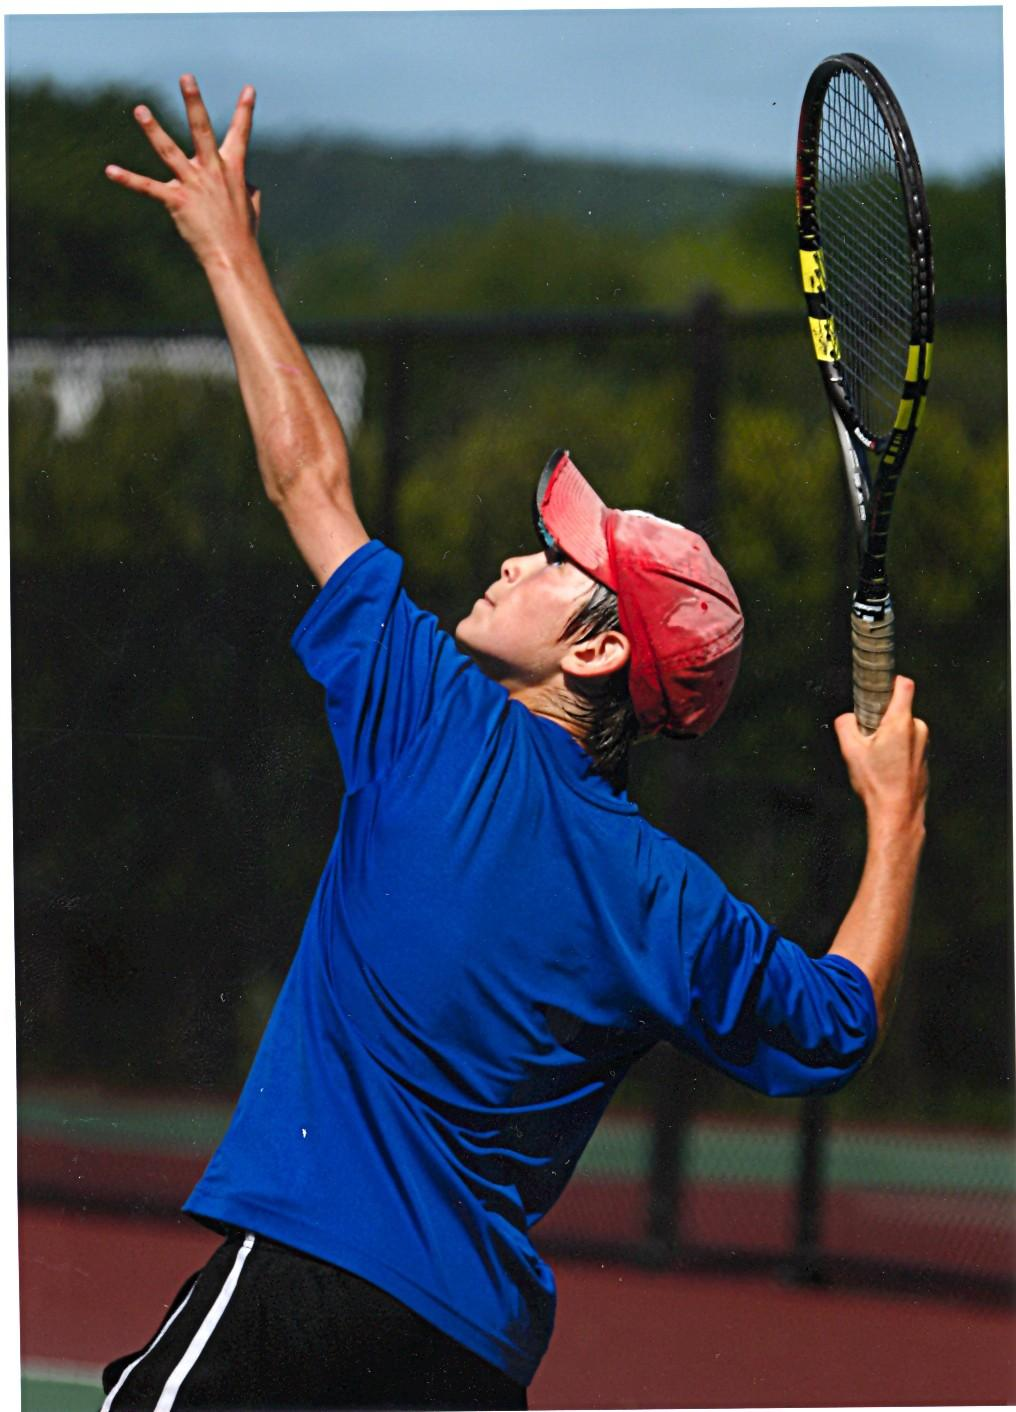 Hirschberg Serves as a Vital Aspect of Varsity Tennis